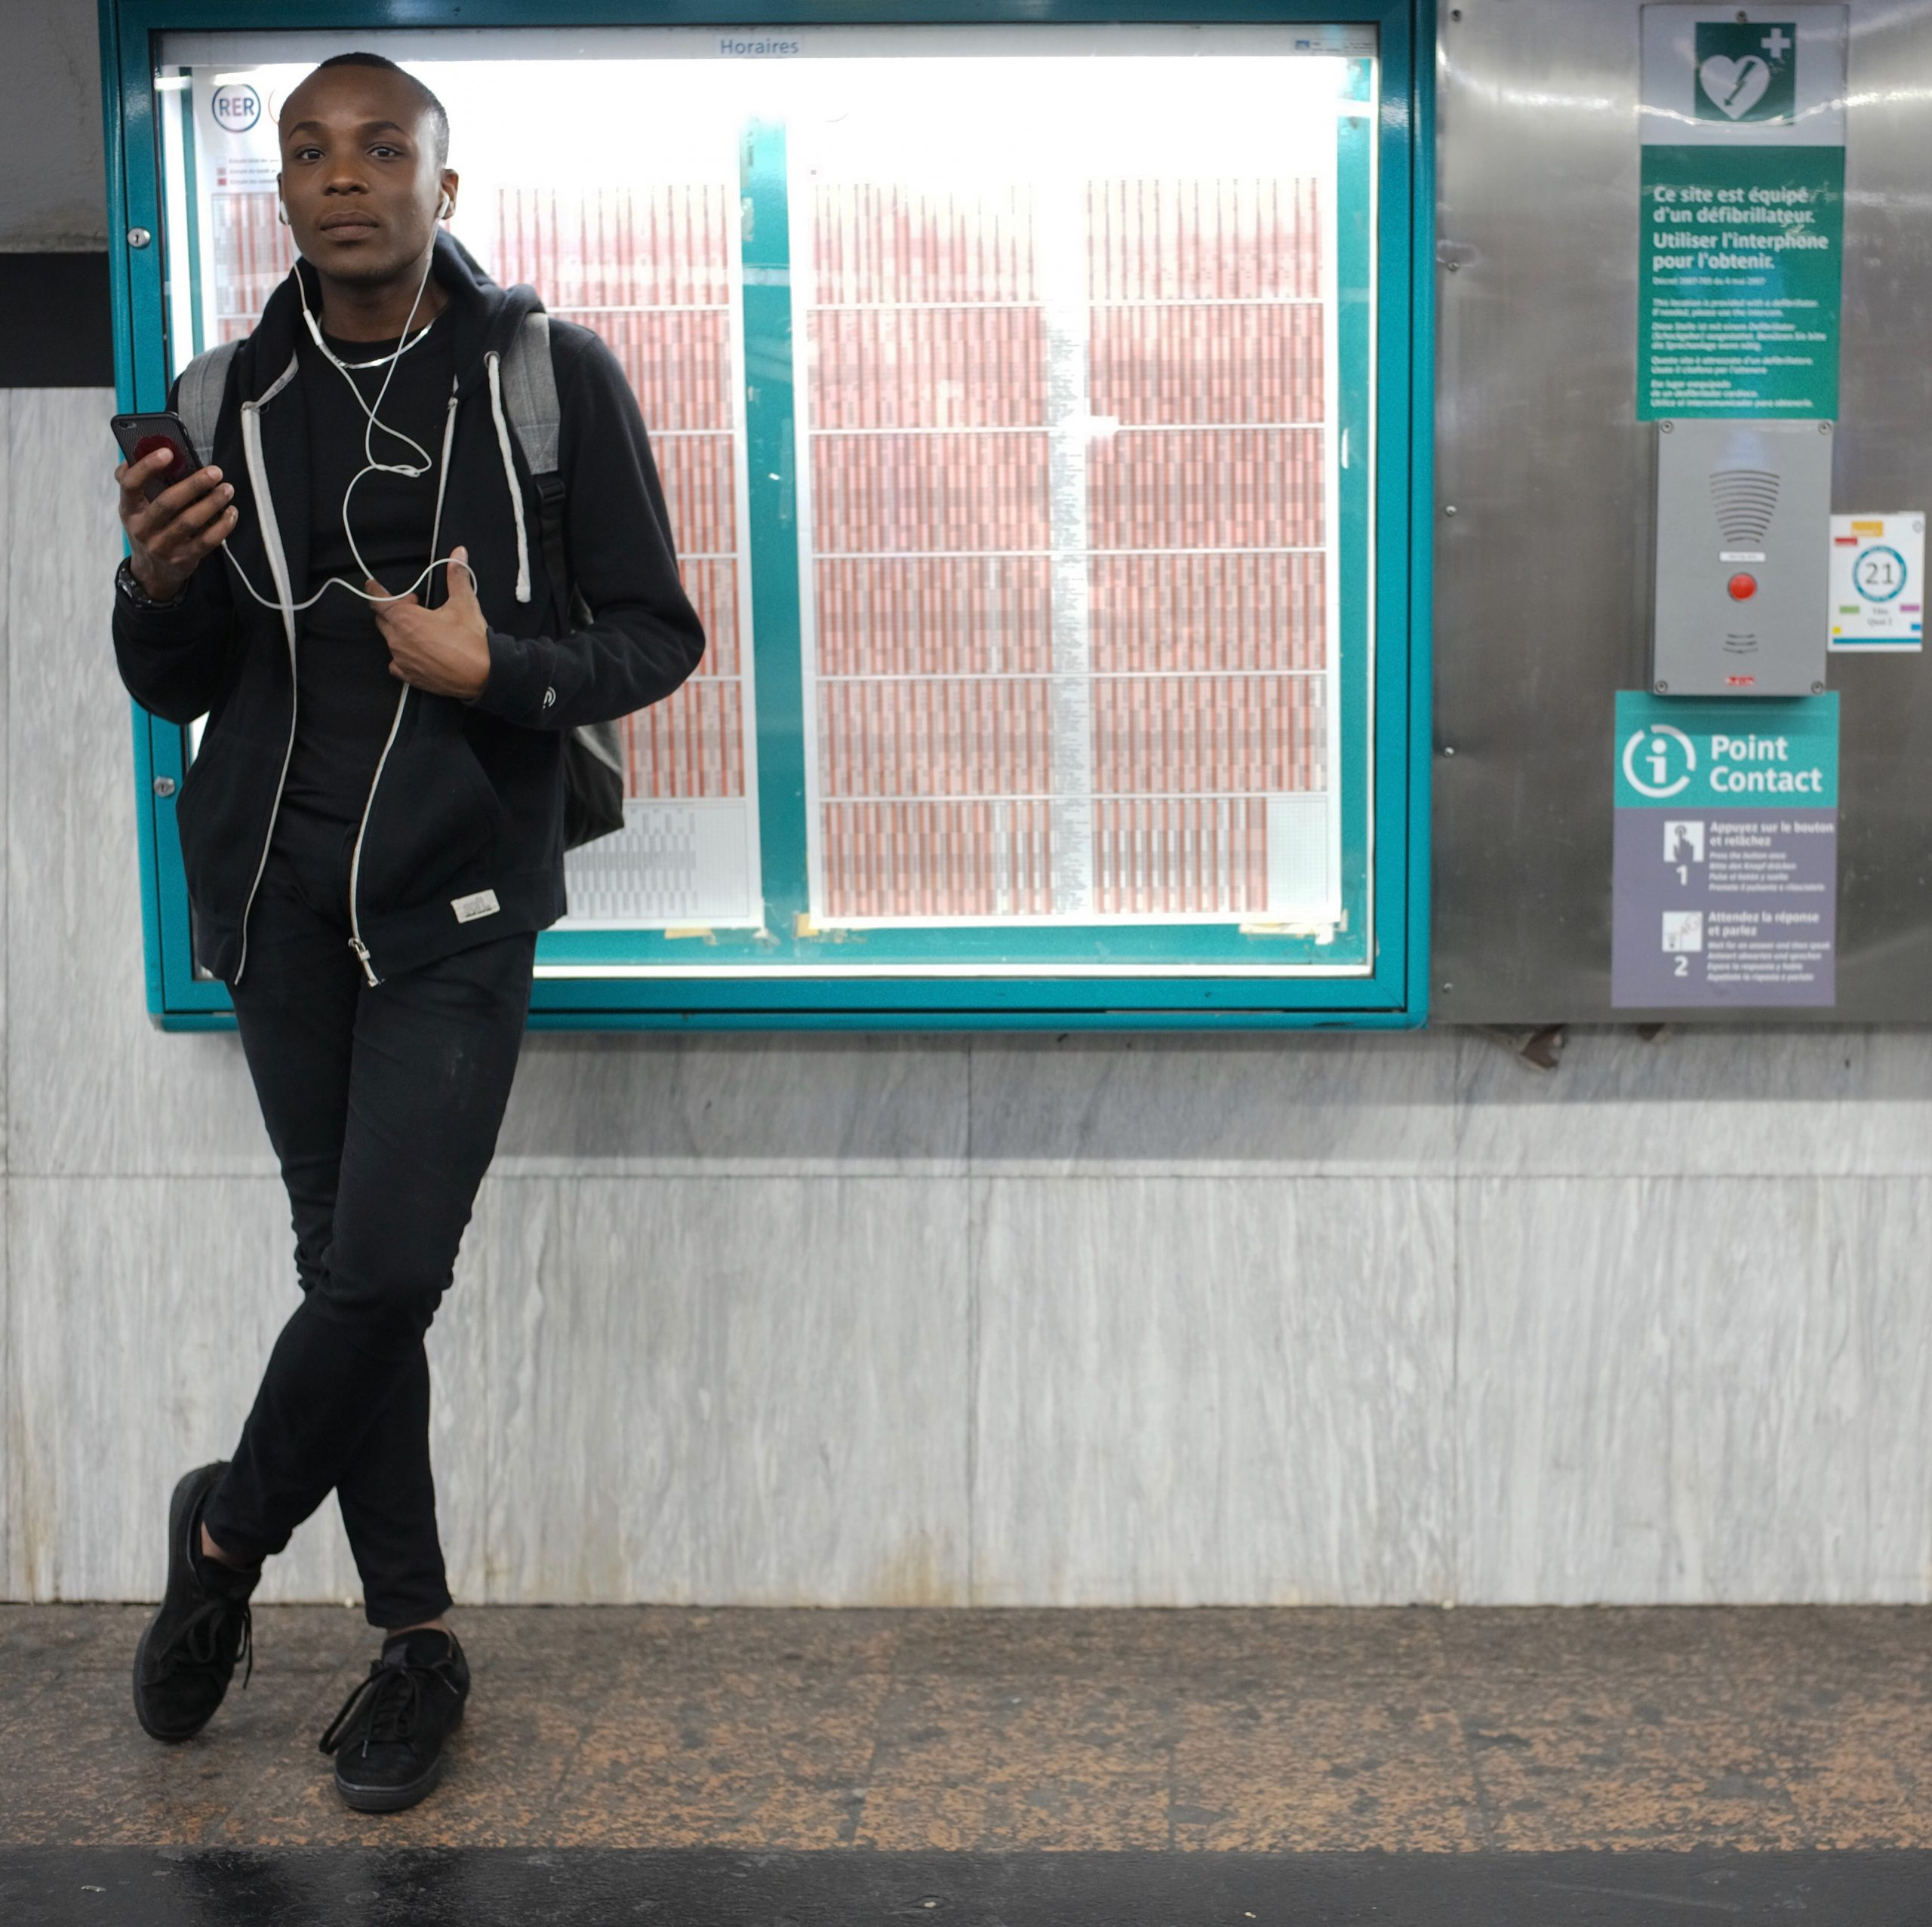 Man waiting for the RER A train at Charles du Gaule station in Paris - Leica M10